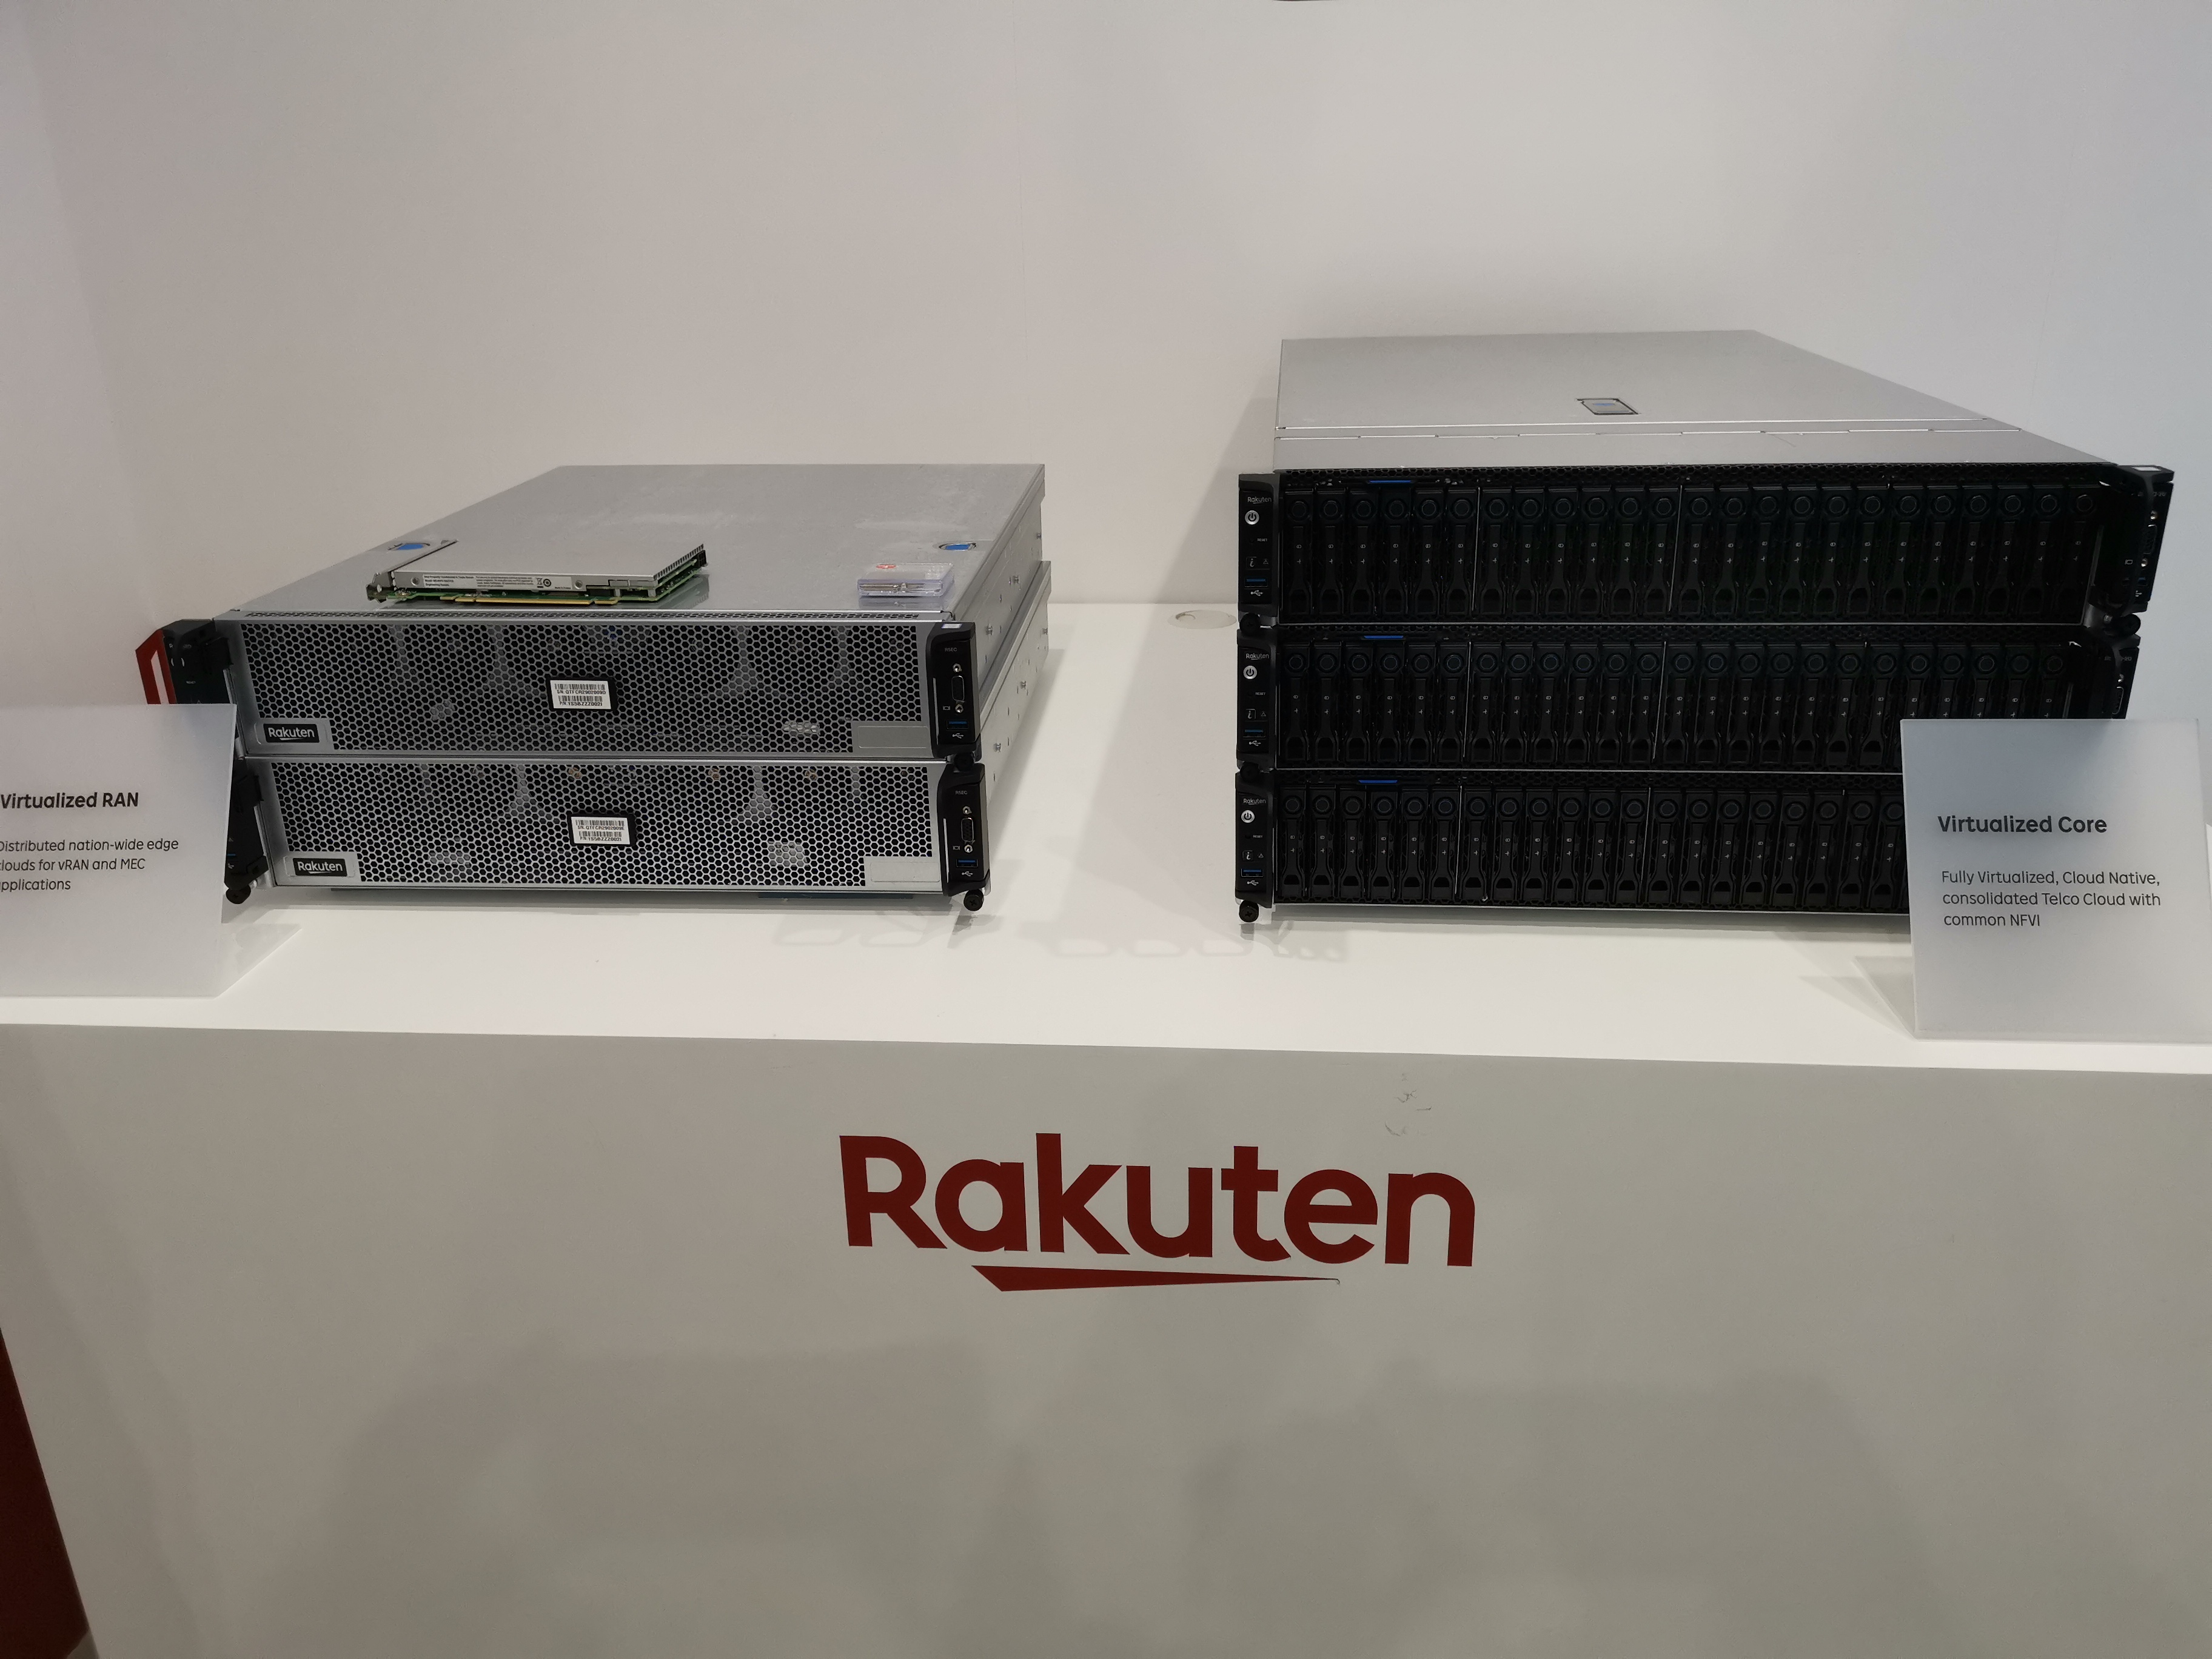 Two of the four hardware formats from QCT